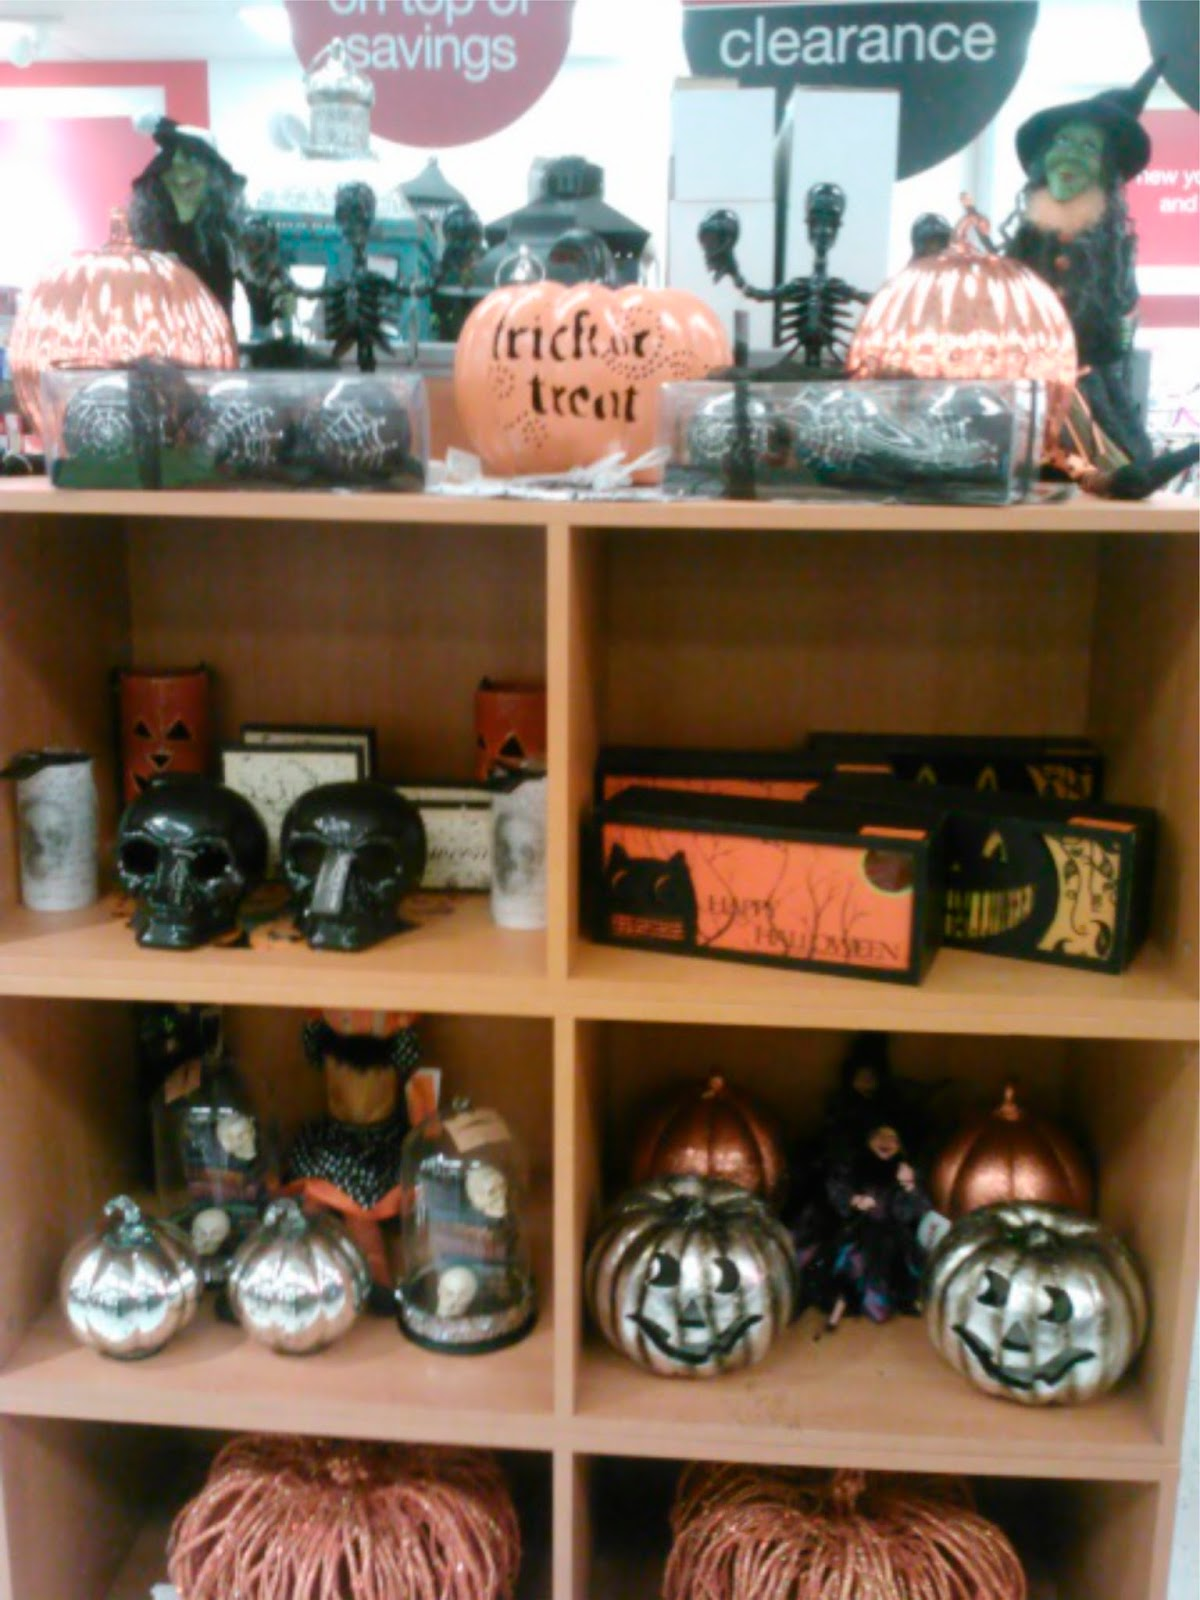 J. Thaddeus Ozark's Cookie Jars And Other Larks: Early